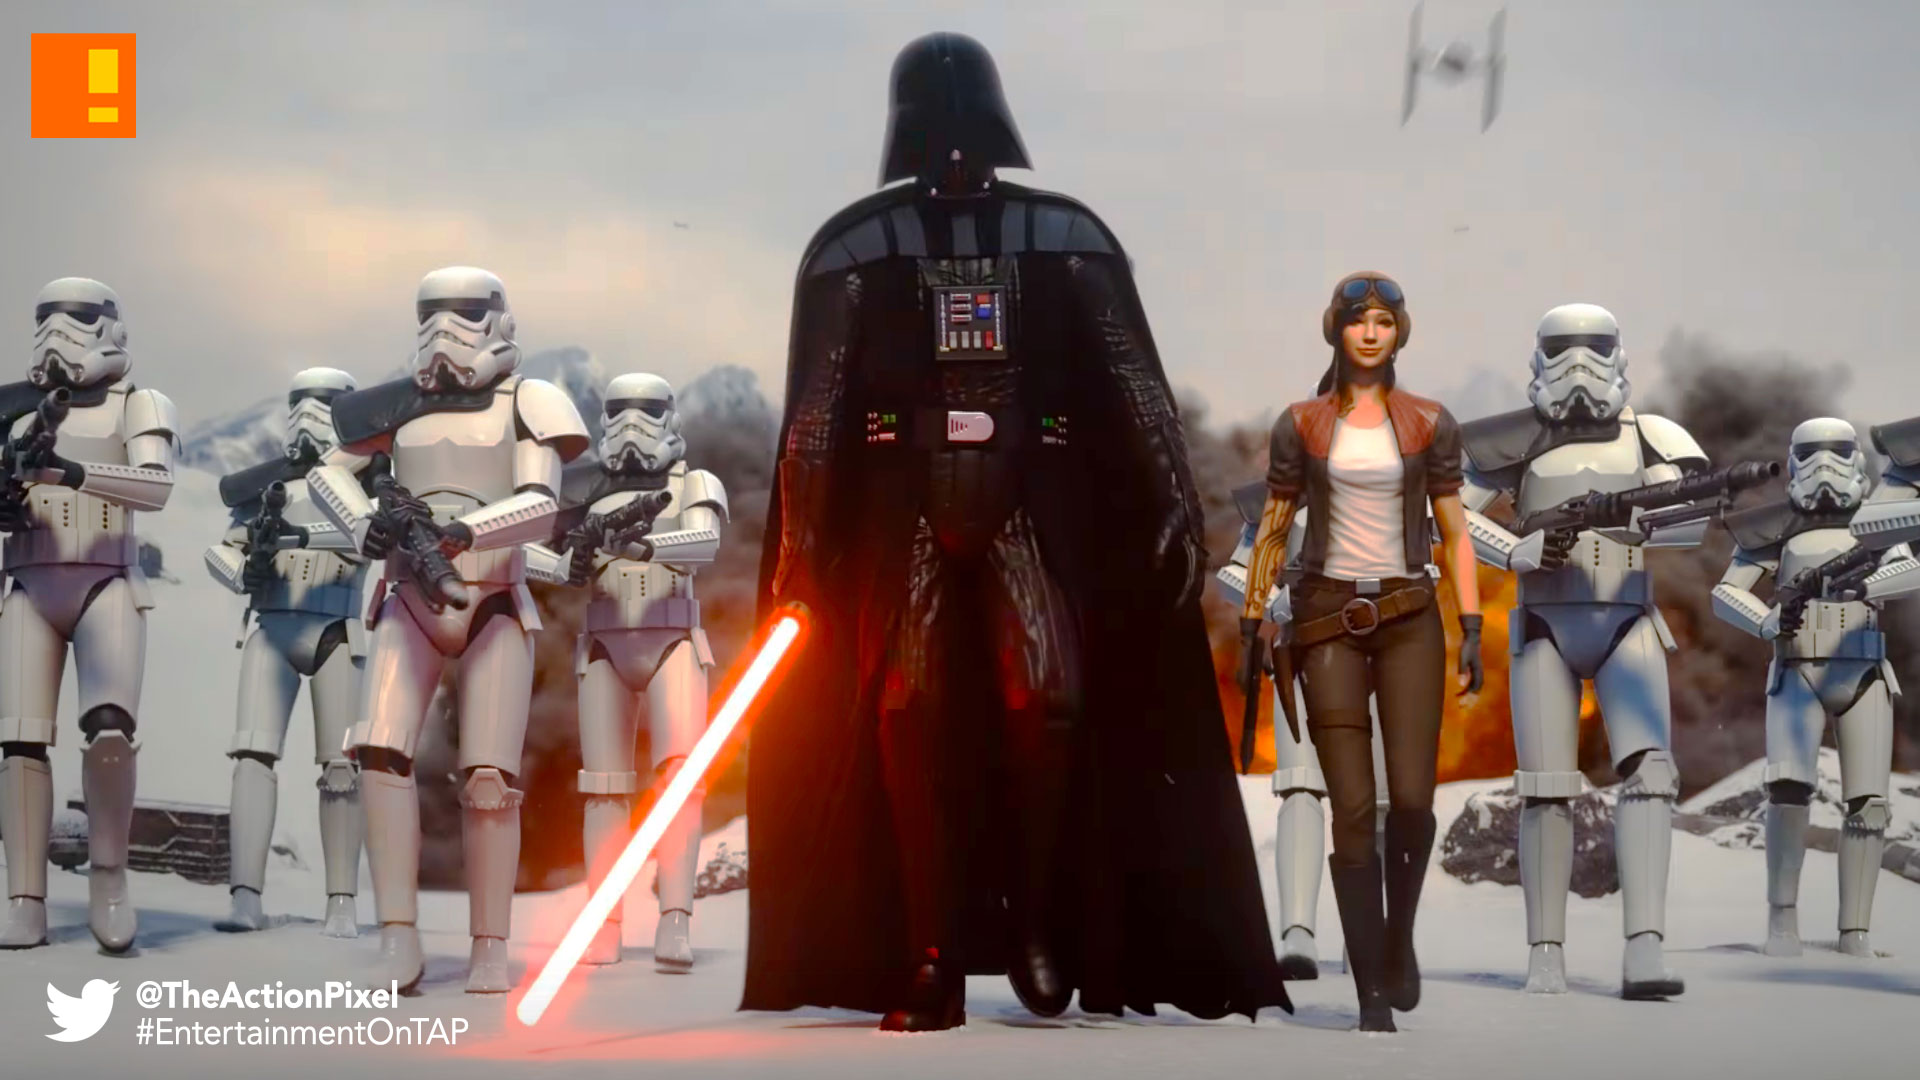 force arena, star wars, the action pixel, entertainment on tap, the action pixel, darth vader, mobile gaming ,